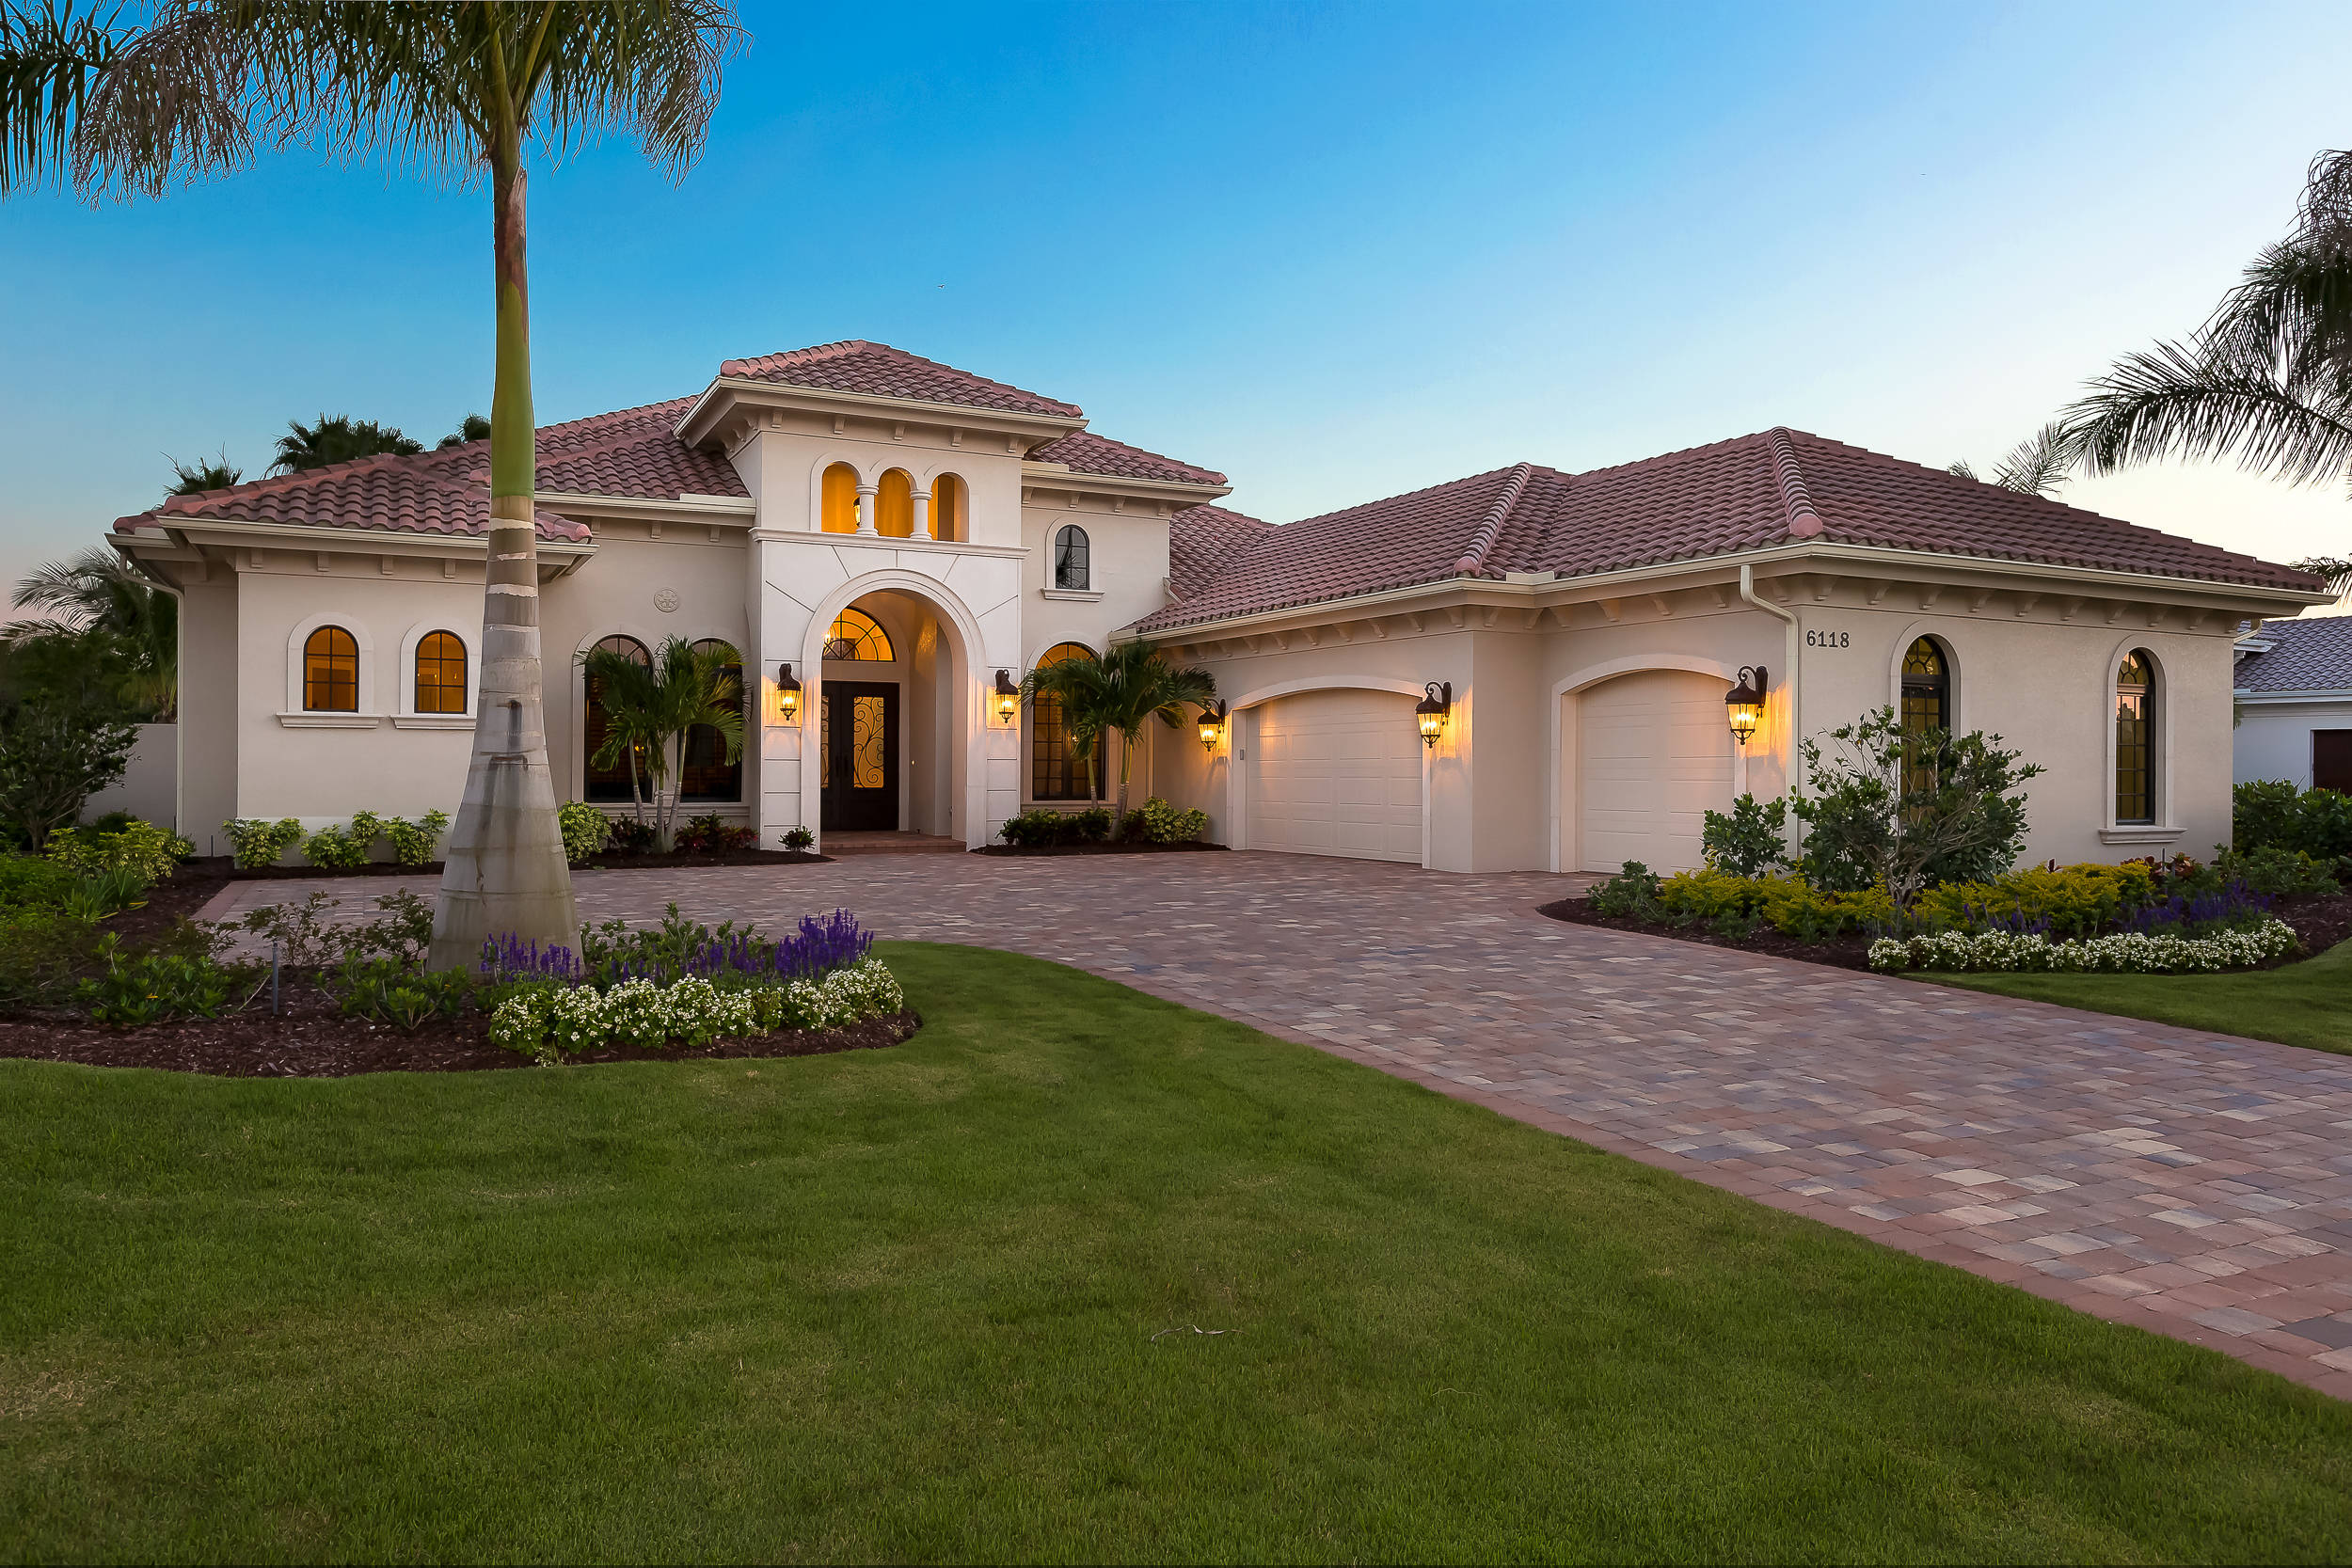 quail west country club homes for sale naples florida